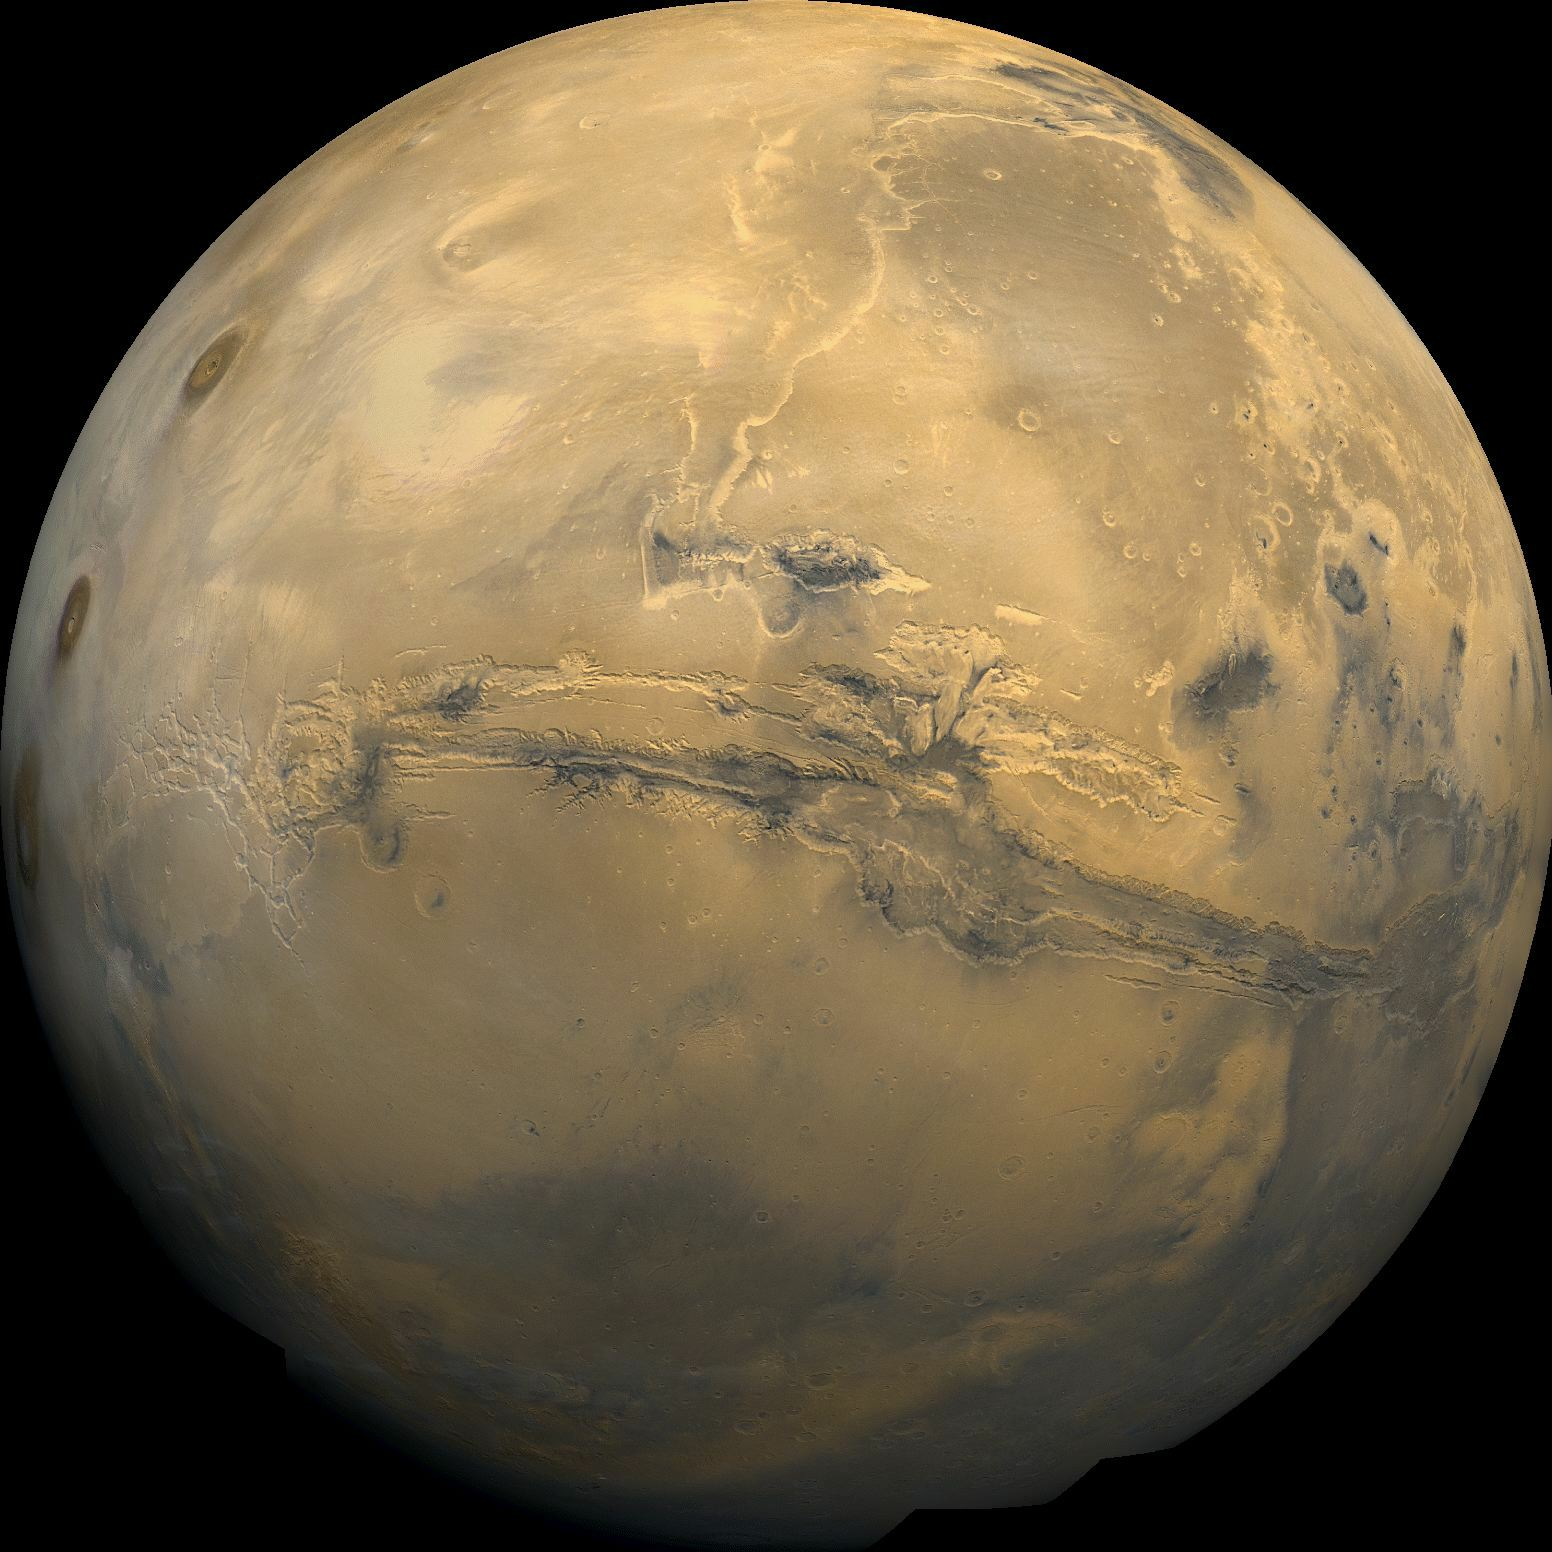 4. Mars also has the longest valley